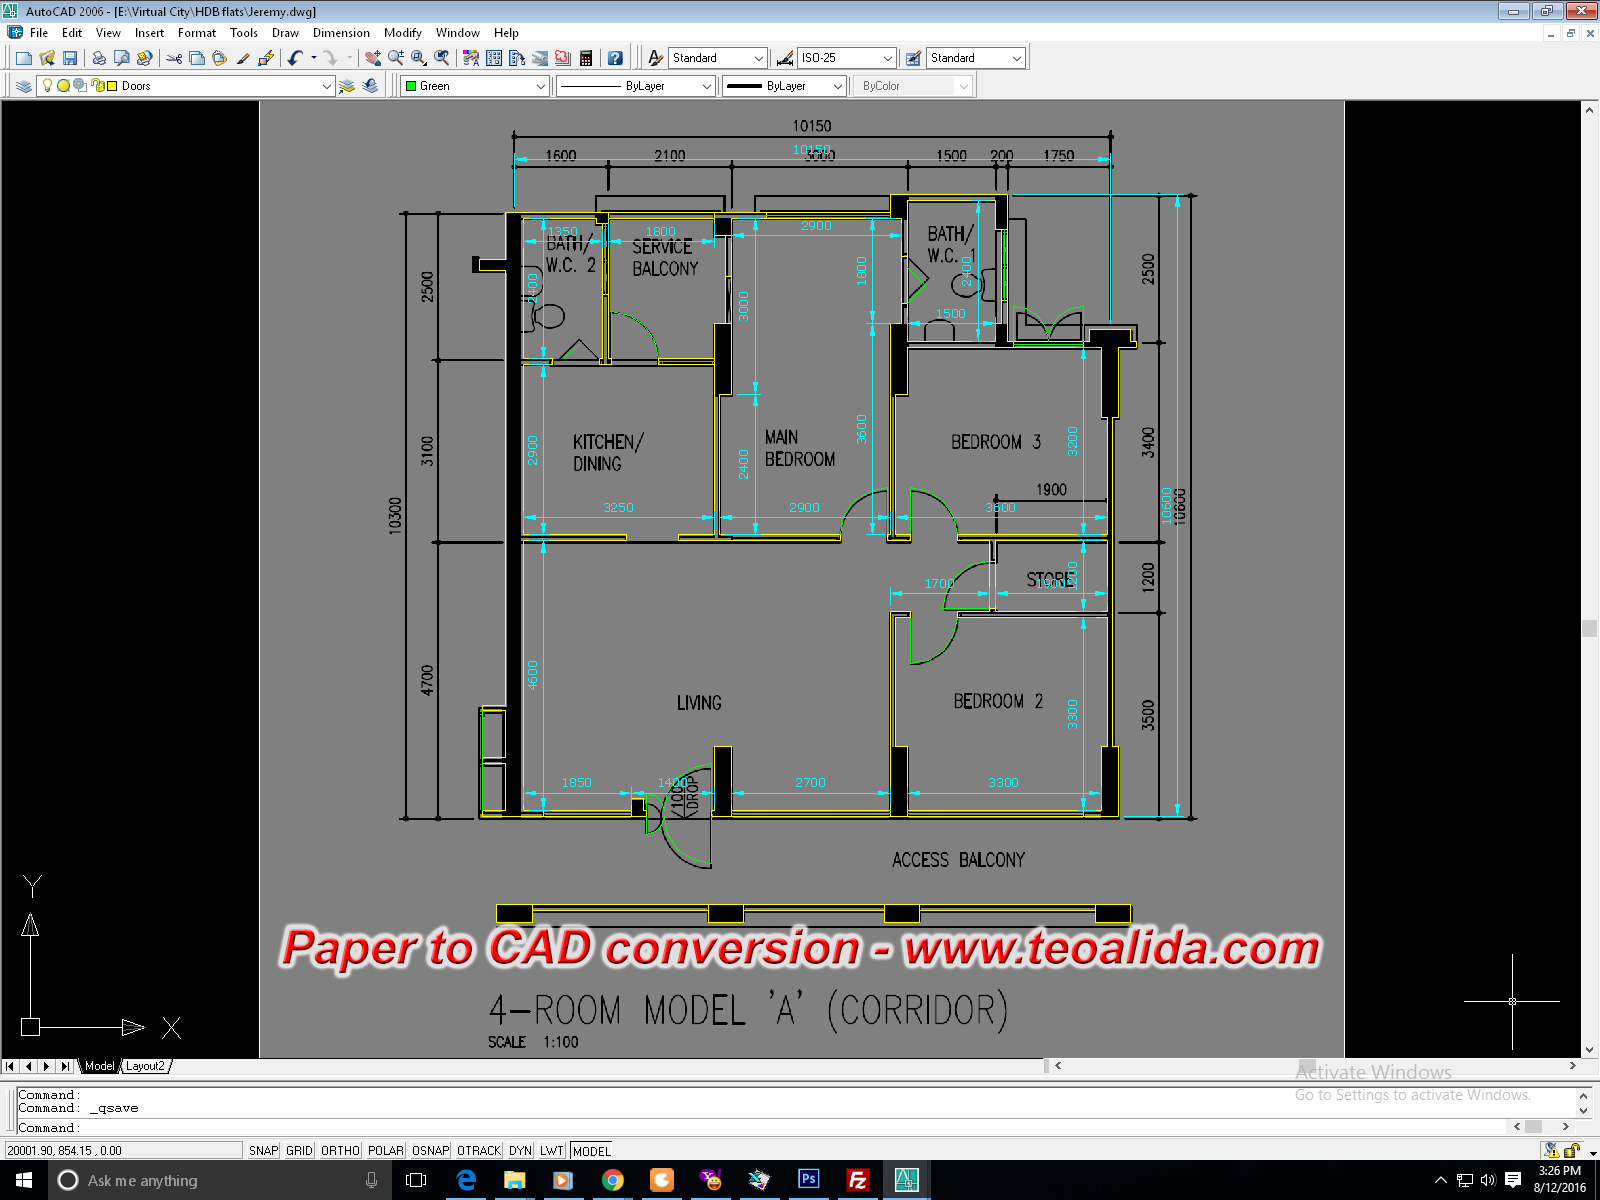 Paper to CAD conversion HDB flat